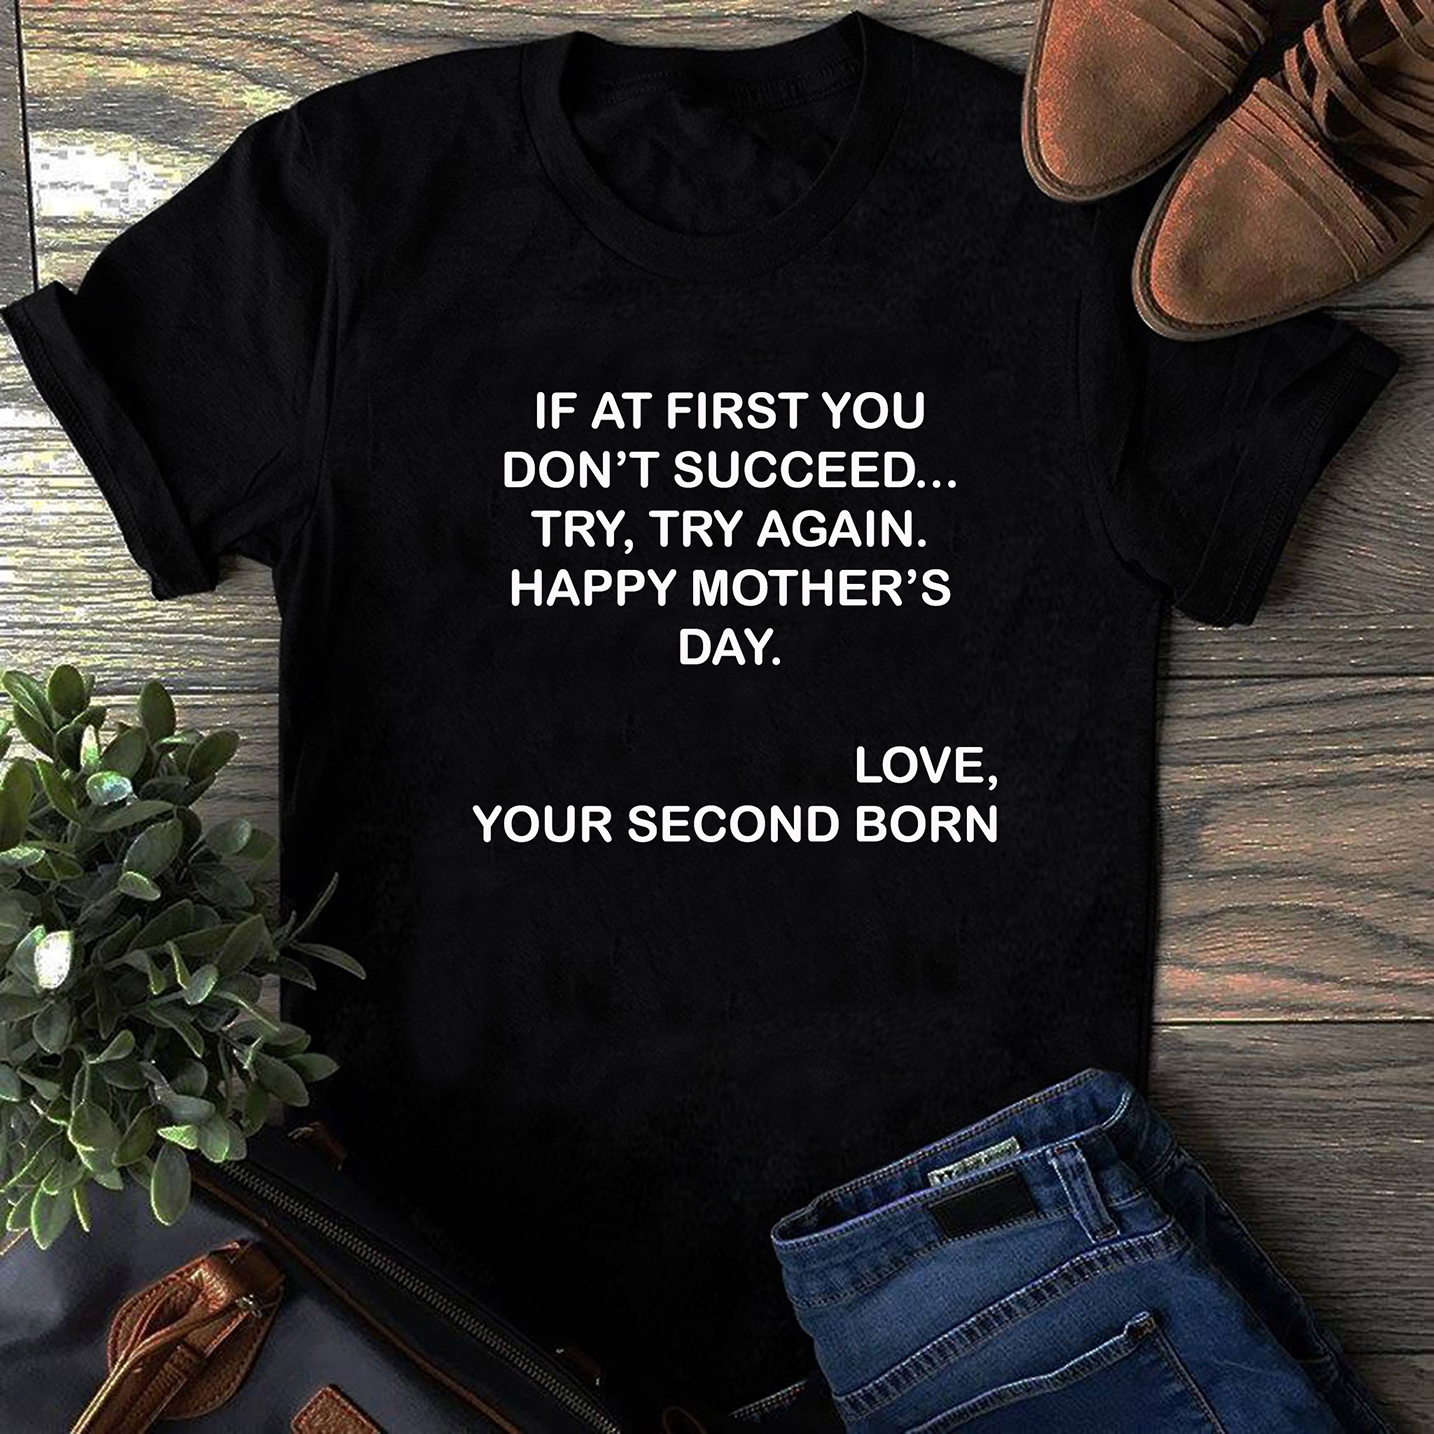 Funny Mother's Day Shirt - Second Born Child